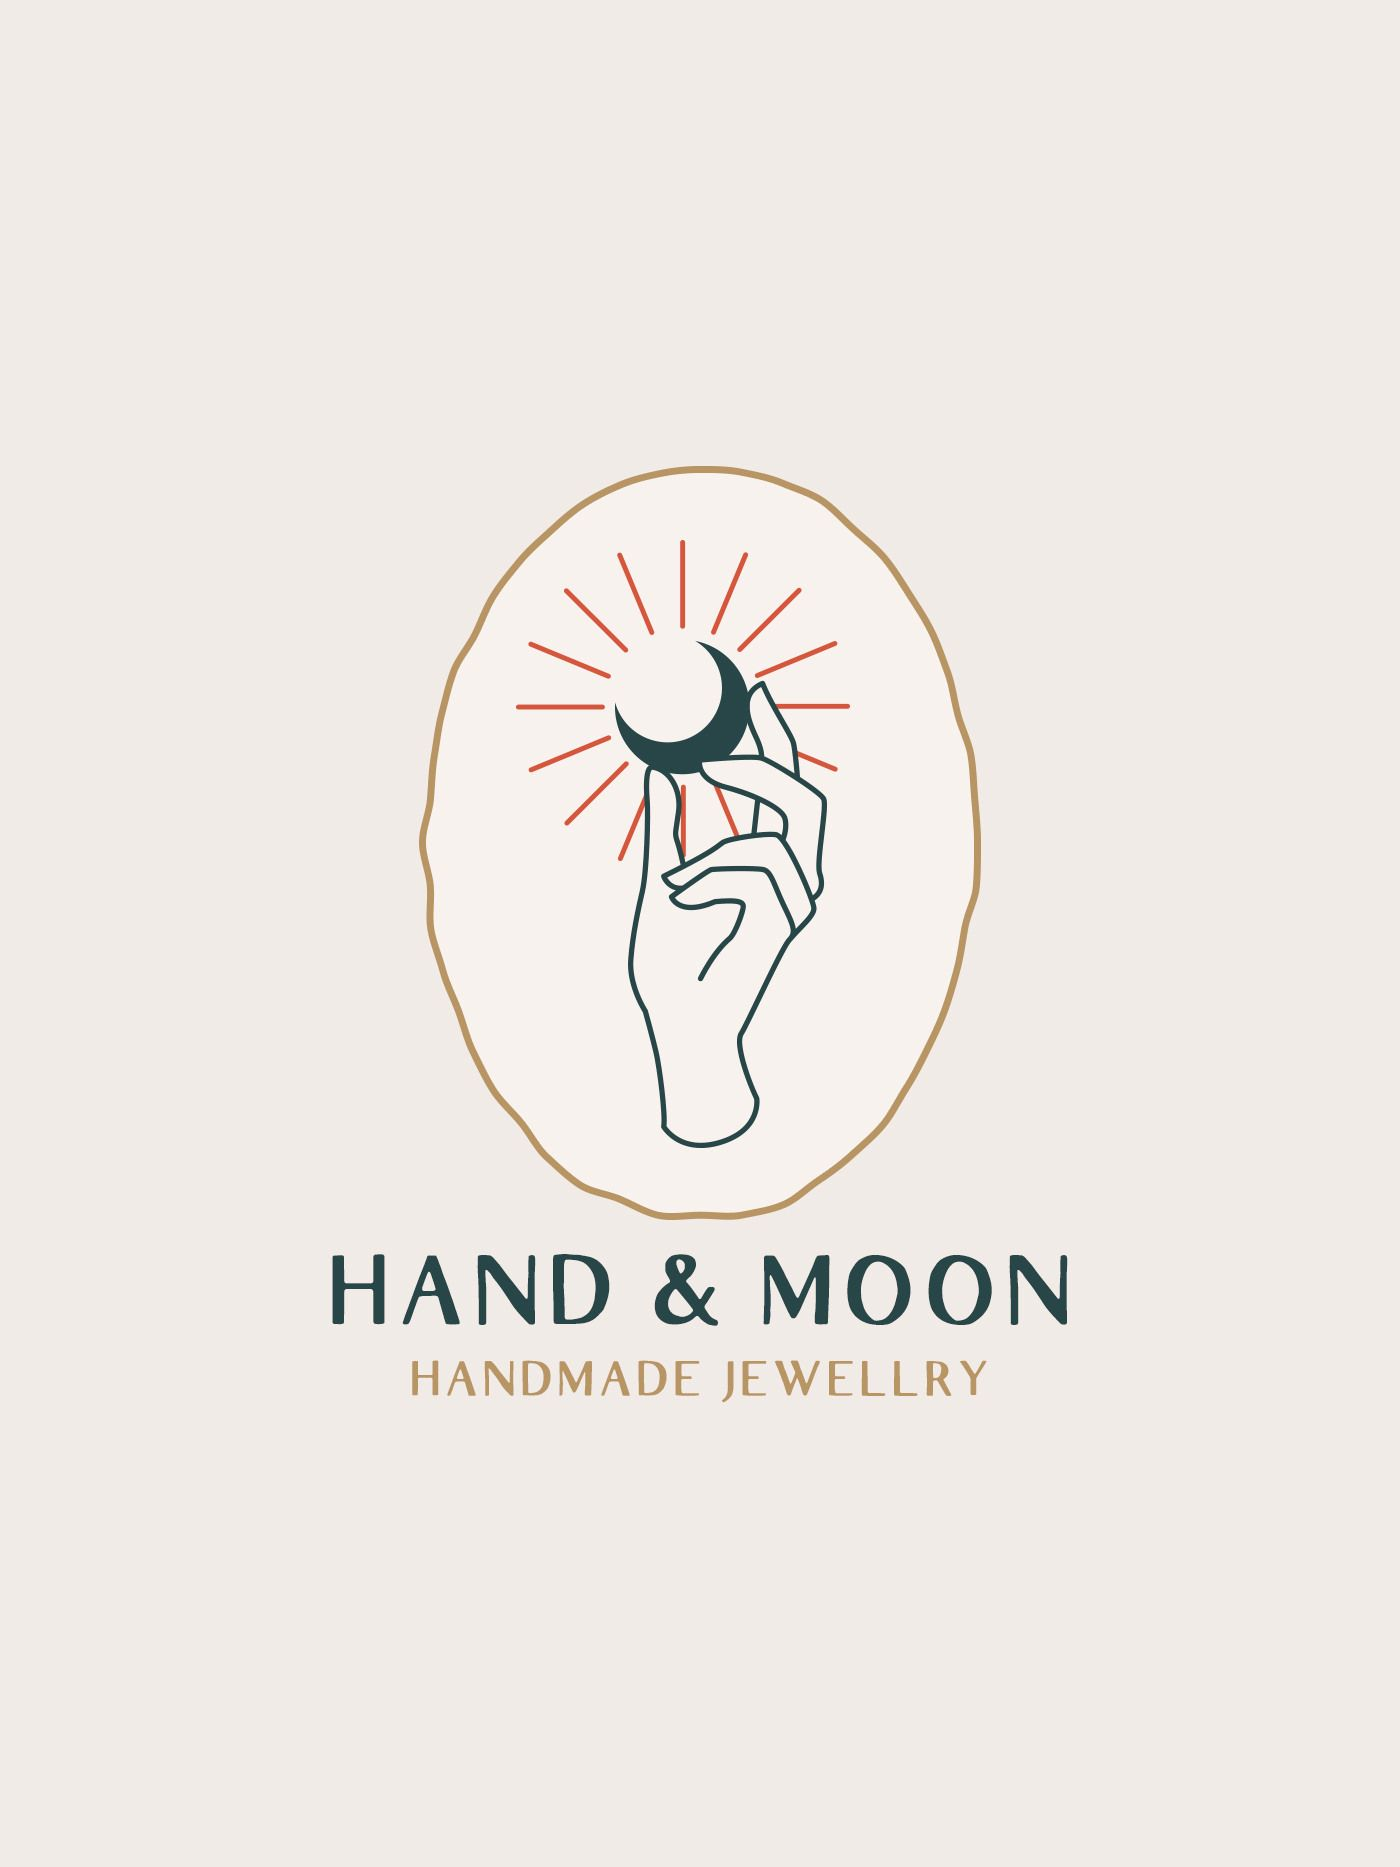 Photo of Hand and moon logo design for handmade jewelry.